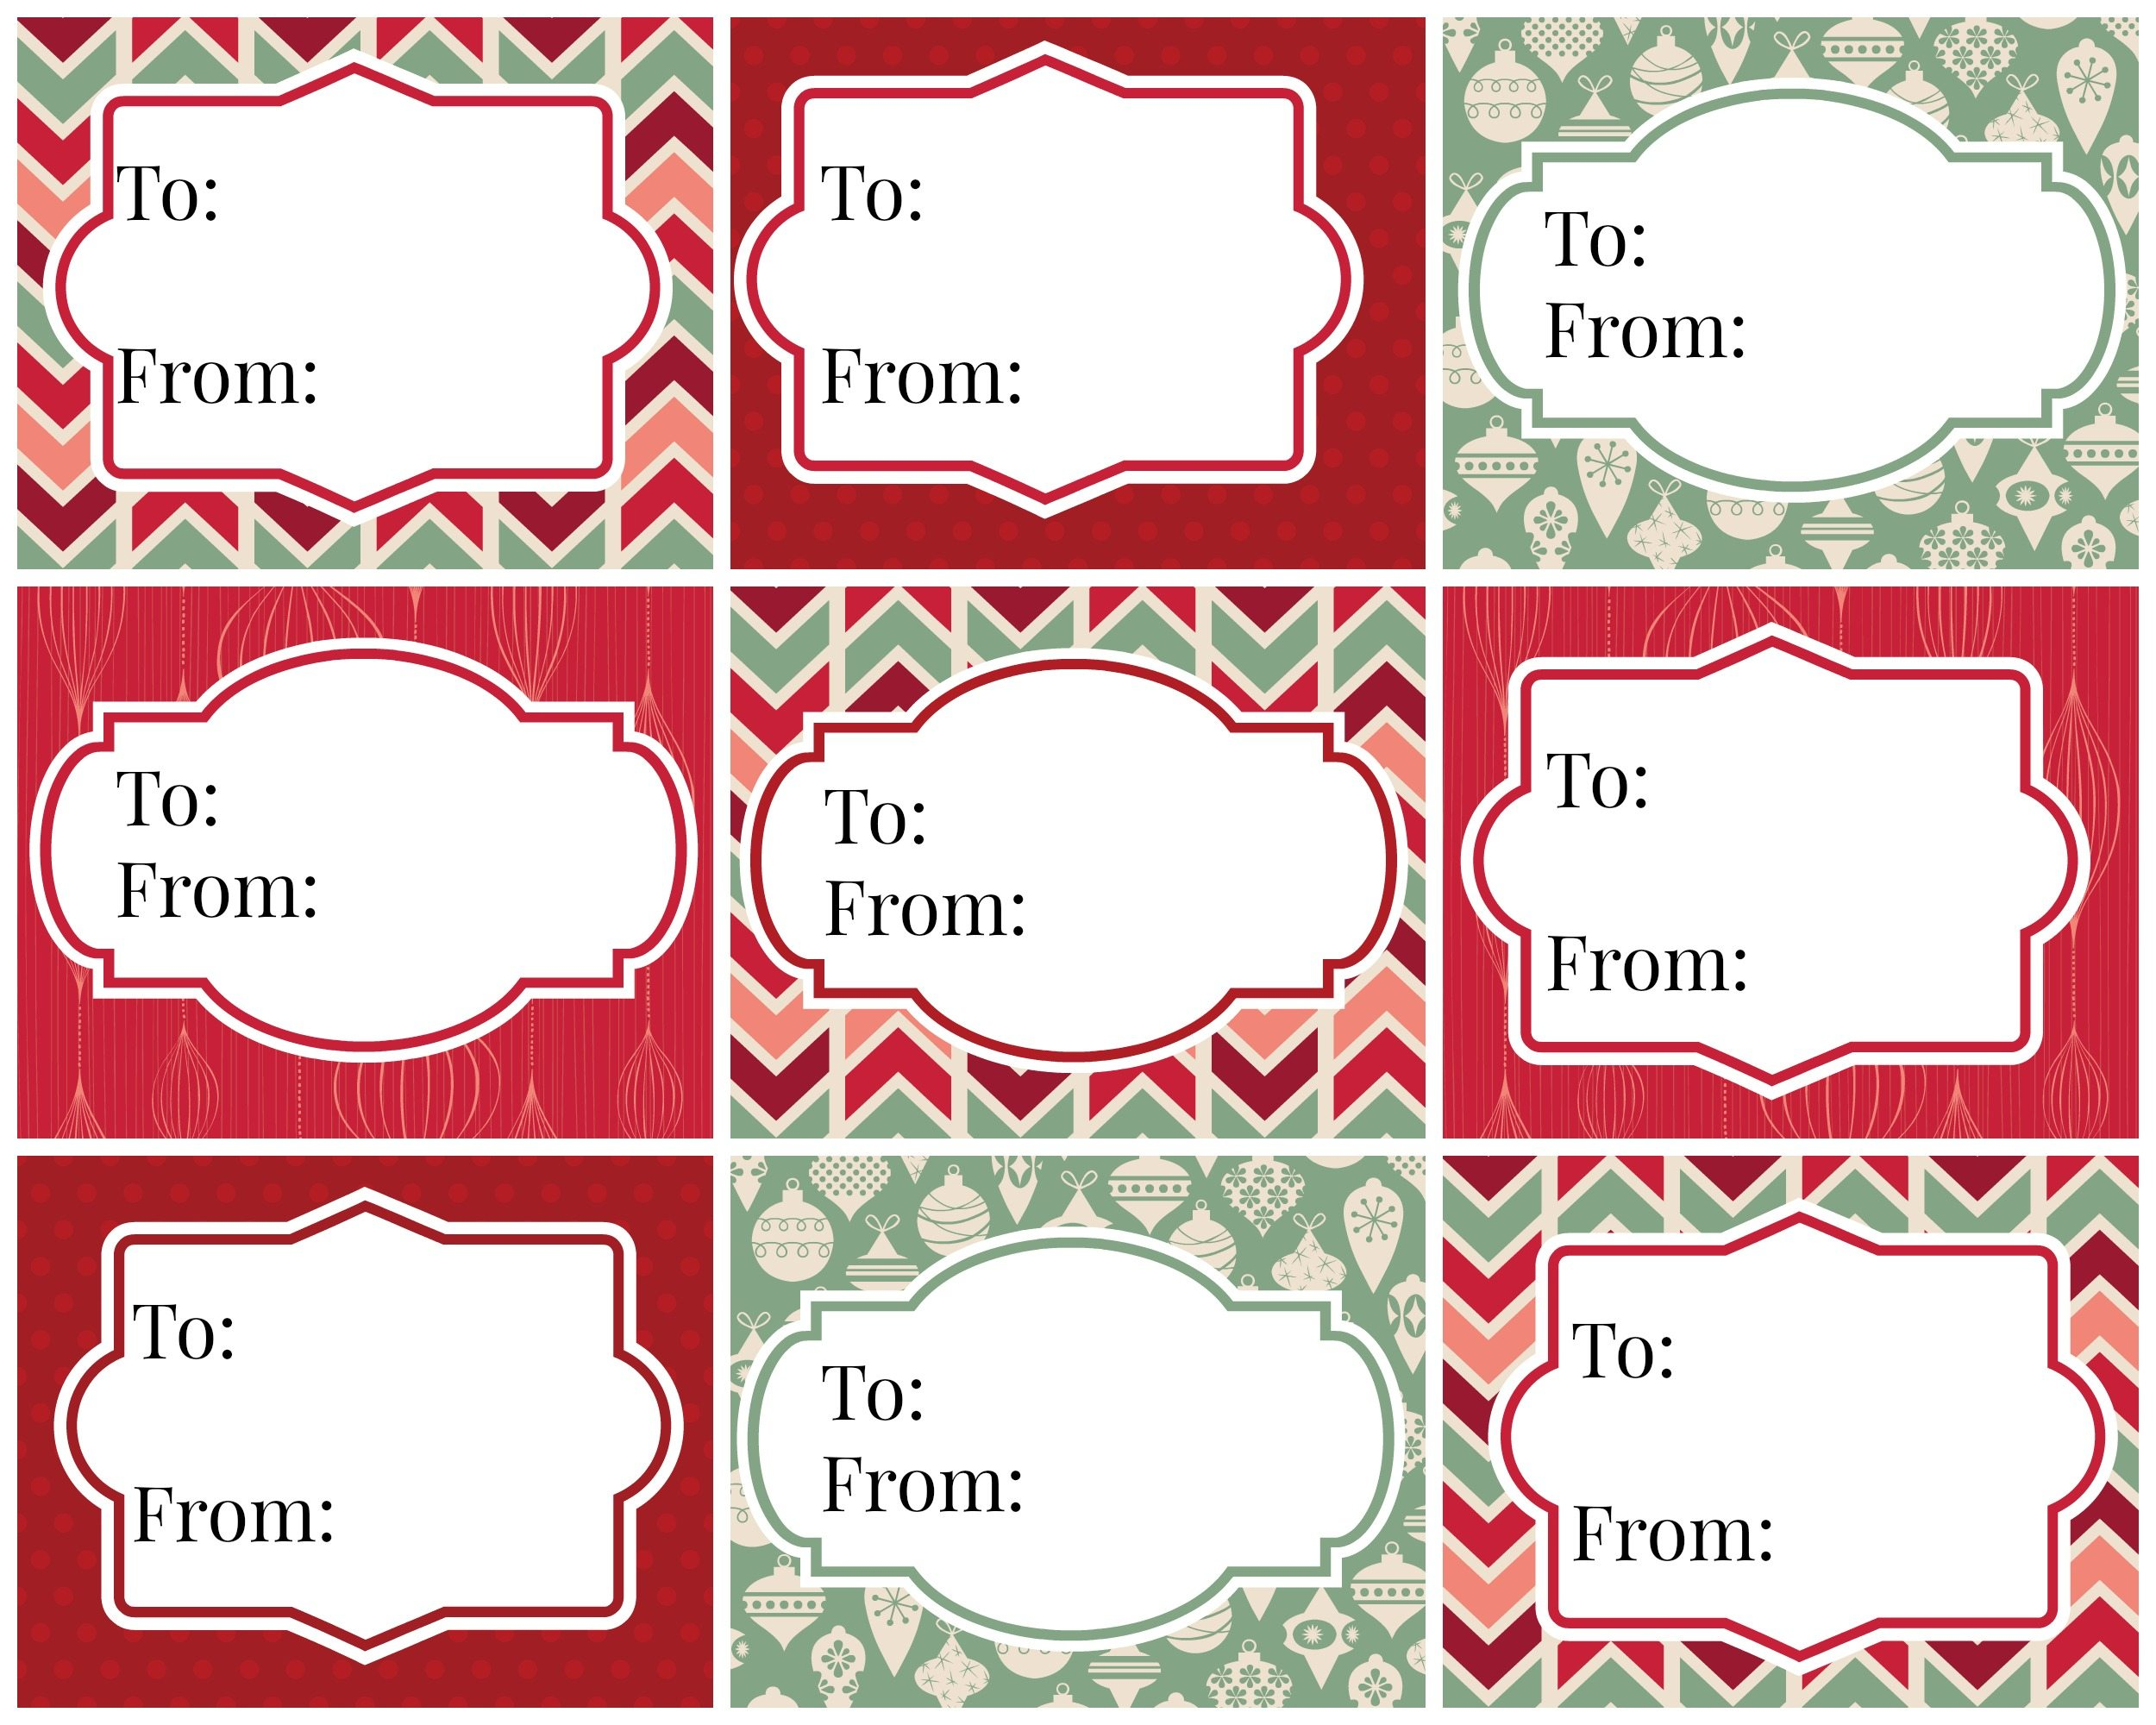 picture about Christmas Tags Printable called Traditional Xmas Reward Tags - Free of charge Printables Refresh Restyle